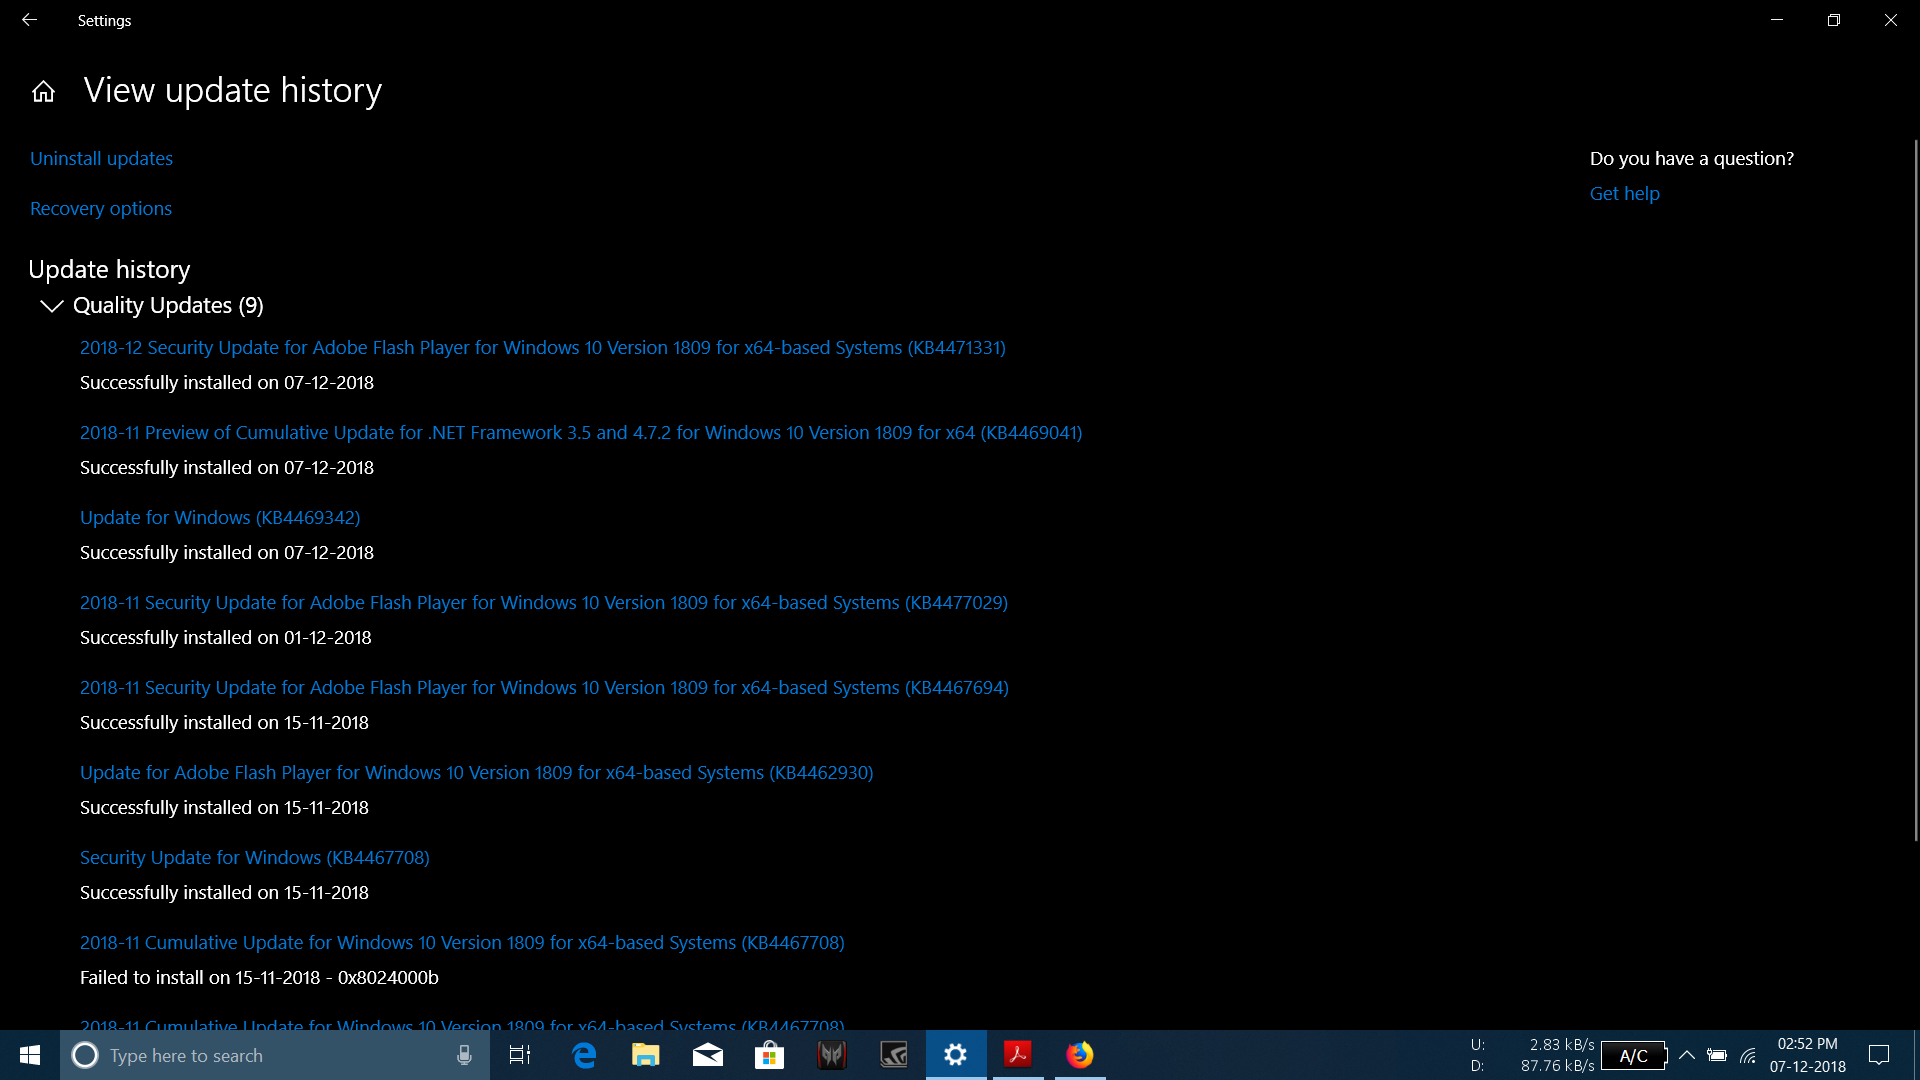 Windows Update tries to install an already-installed update. 9bd3402b-6d3c-4e4a-abf0-ed7797cbf6da?upload=true.png